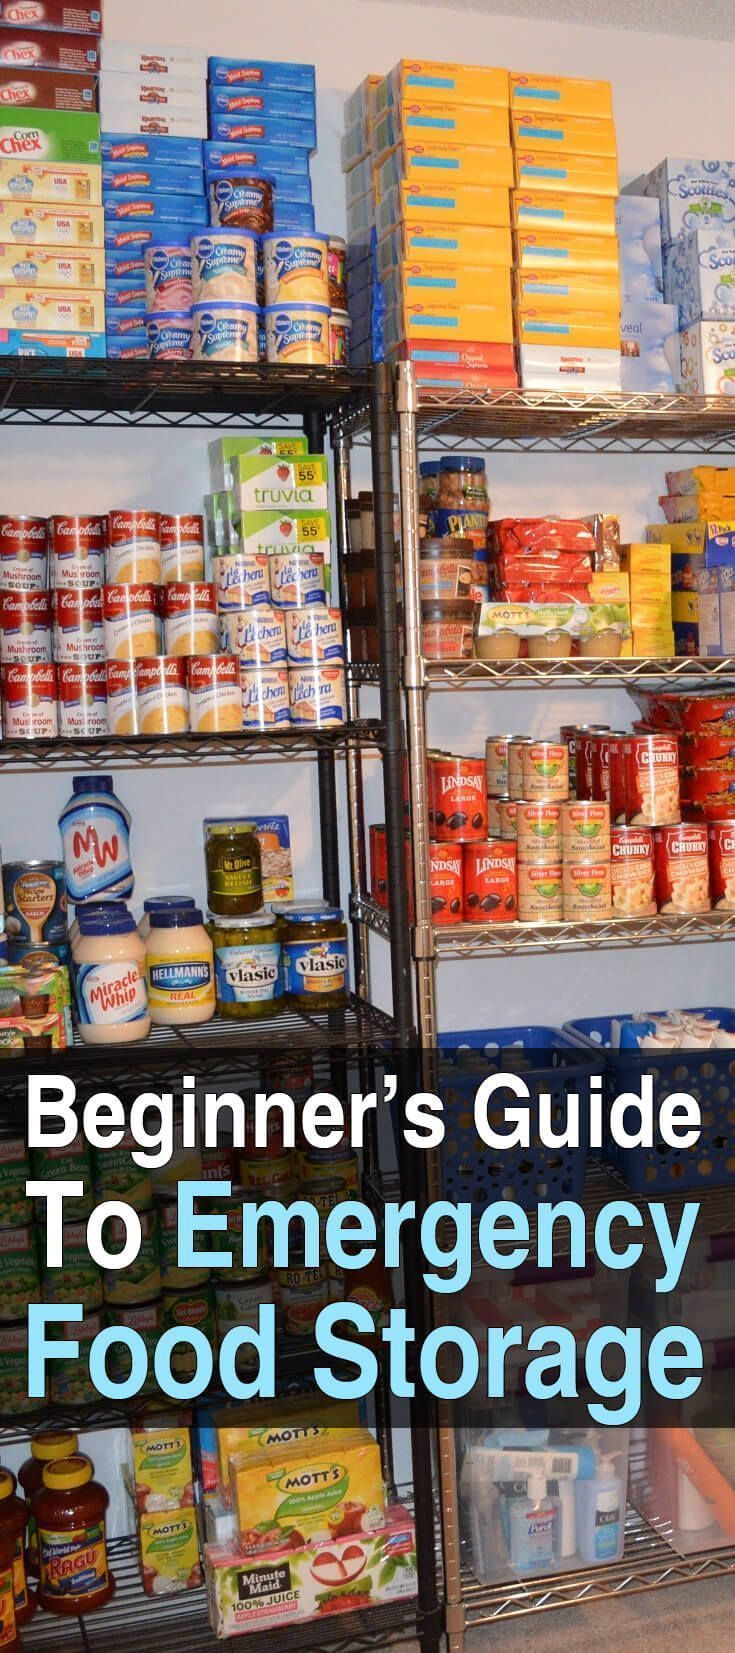 The Beginner's Guide To Emergency Food Storage. By the end of this guide, you will know the basics of food storage so you can start stockpiling the right foods in the right places to ensure your family has something to eat after a major disaster. #Foodsto